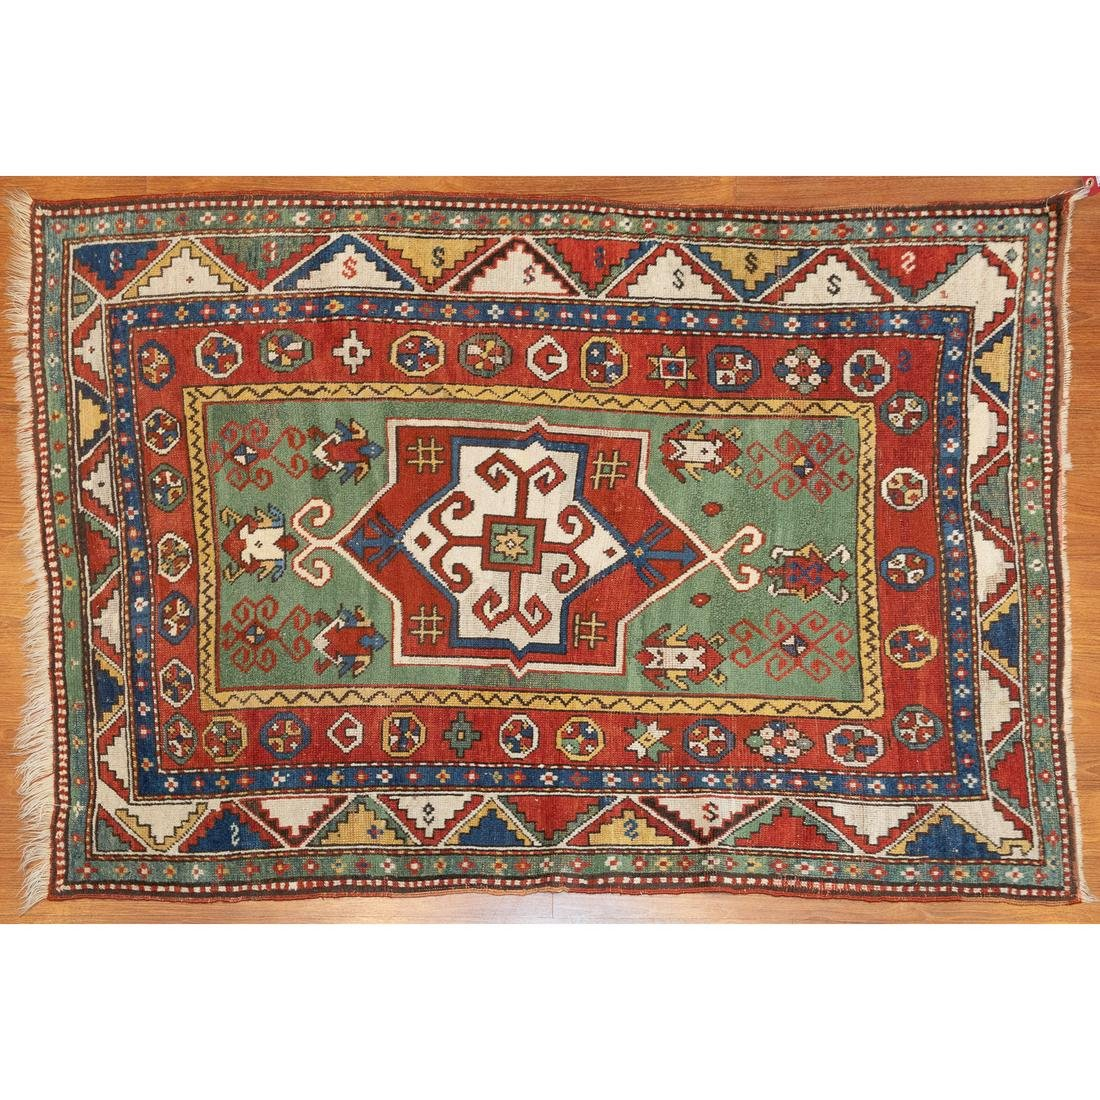 Antique Kazak Rug, Caucasus, 3.9 x 5.1